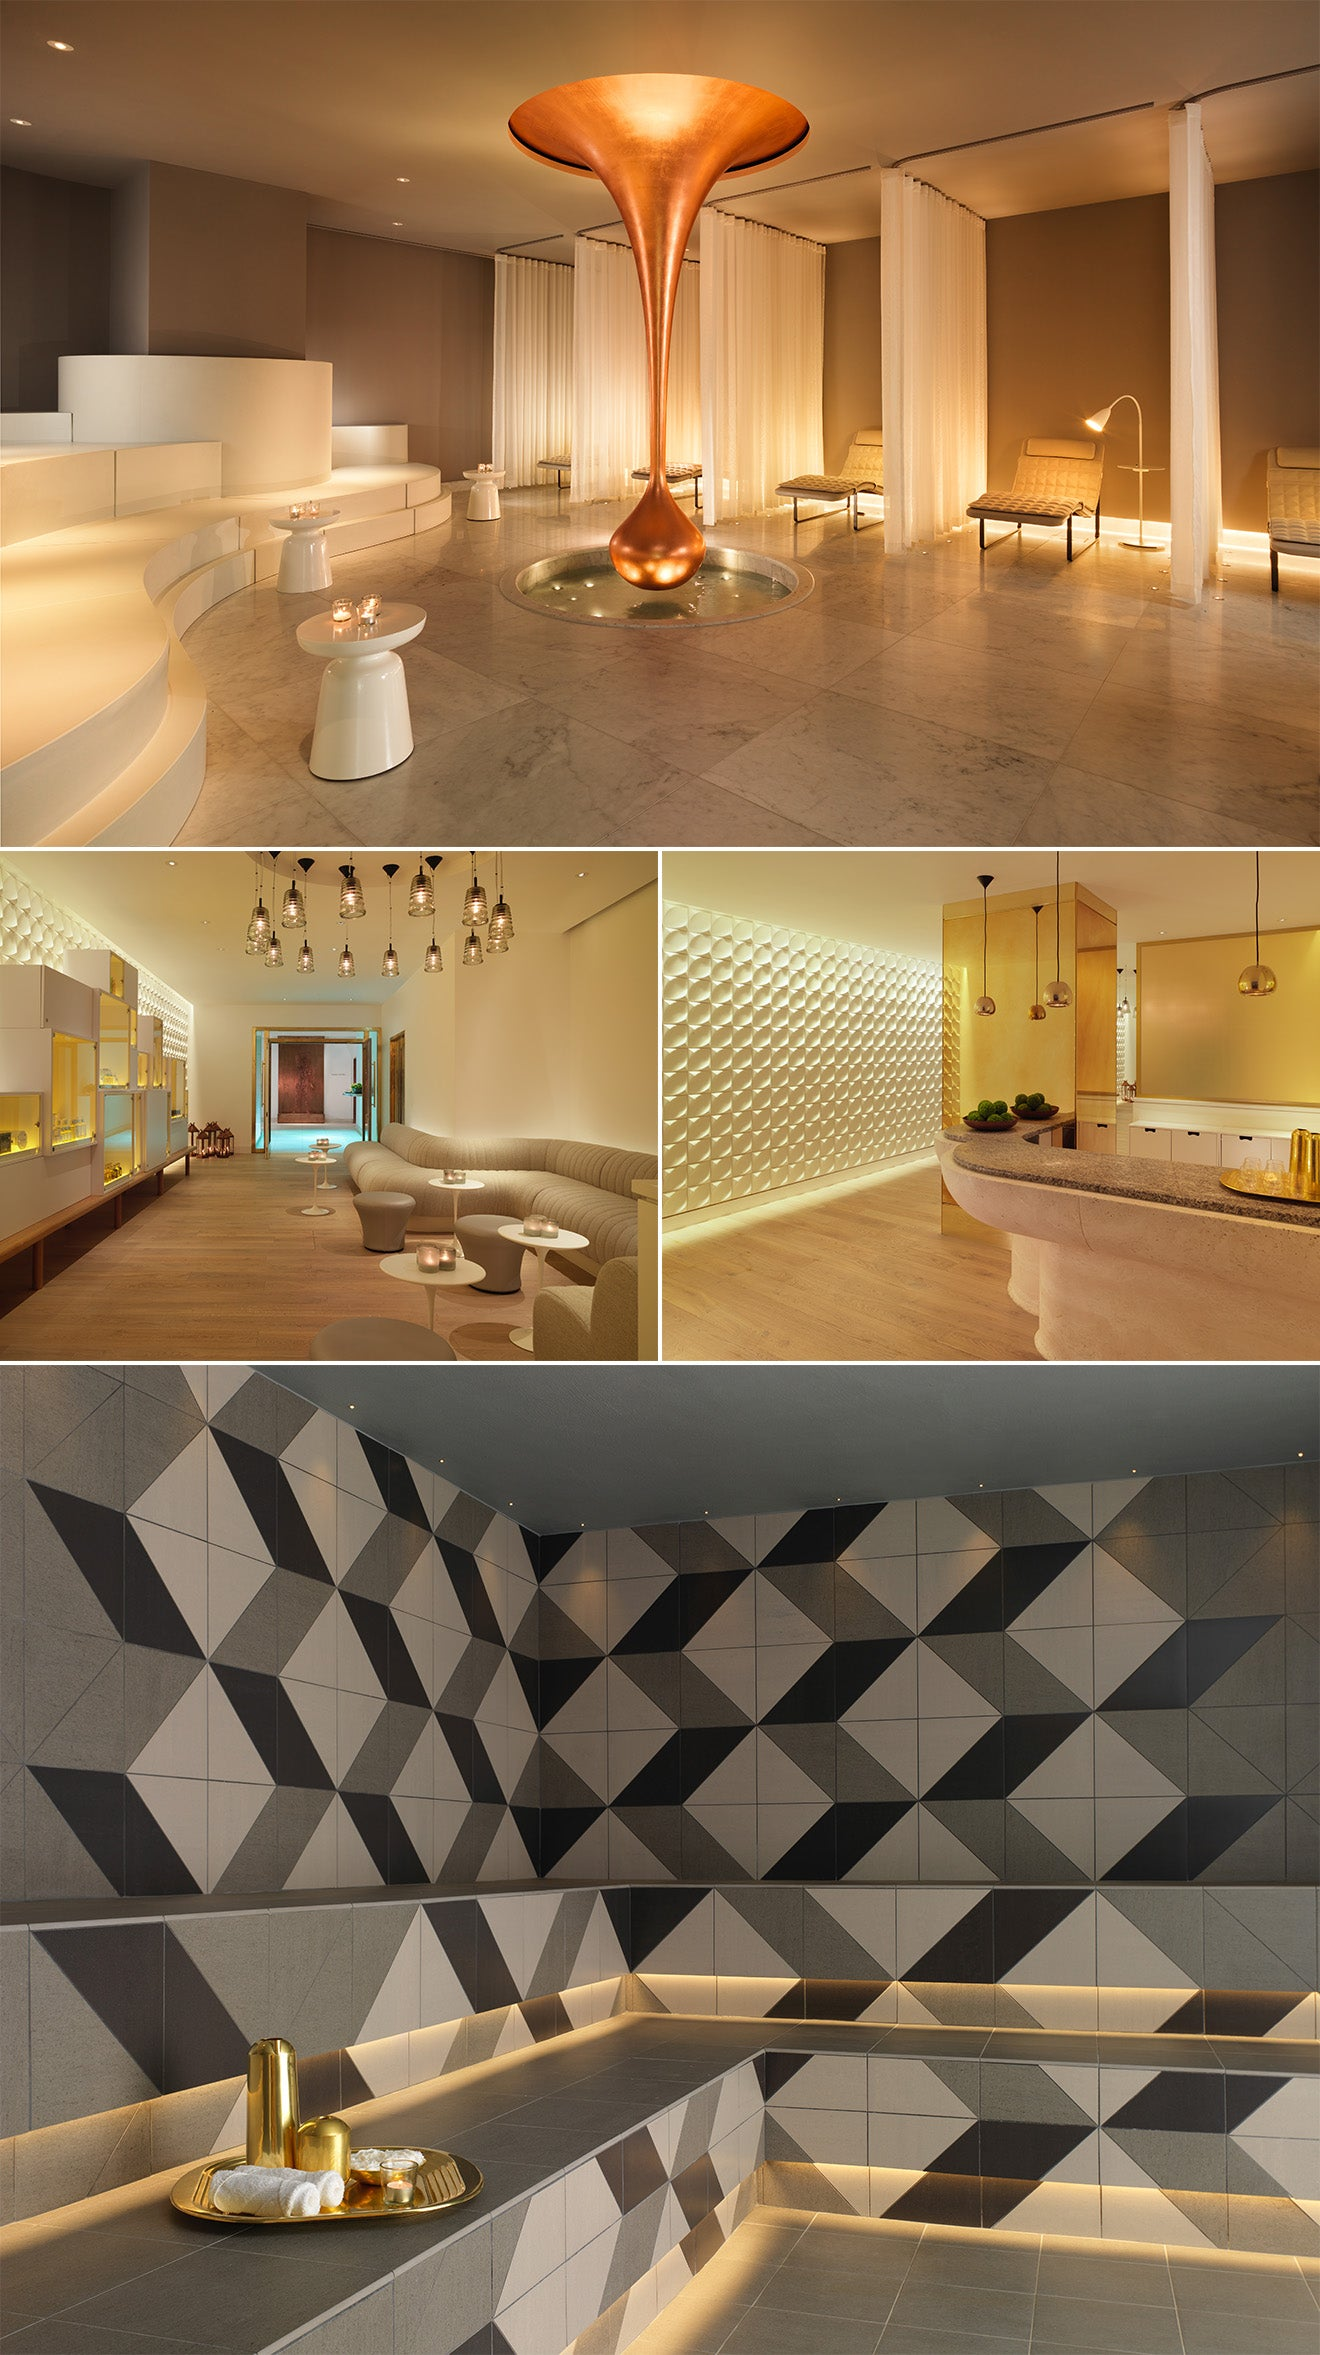 Mondrian London, Sea Containers House, Spa and Treatment areas. Copper Teardrop feature